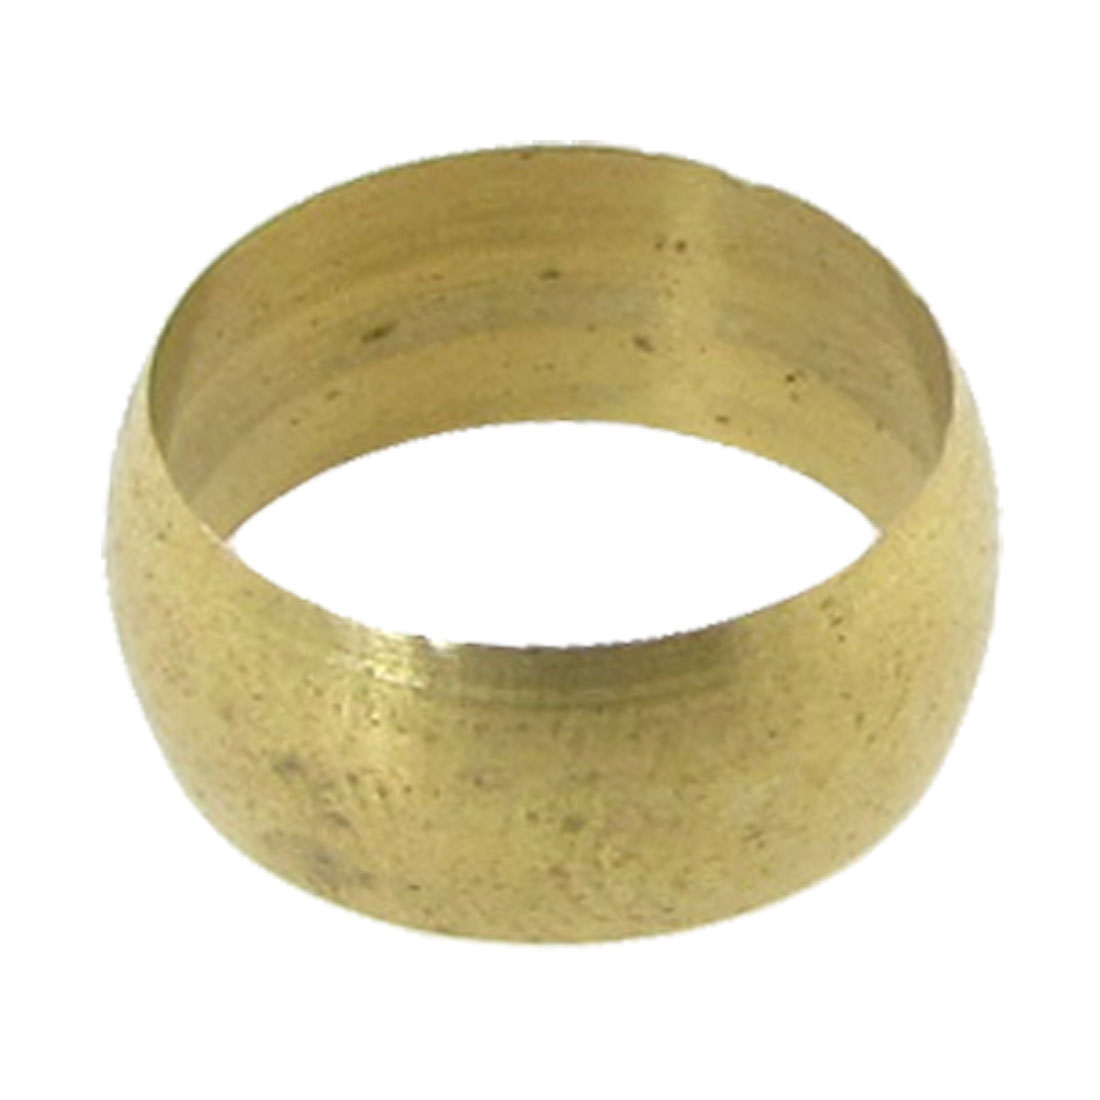 Brass-Compression-Sleeve-Ferrule-Ring-12mm-Dia-Gold-Tone